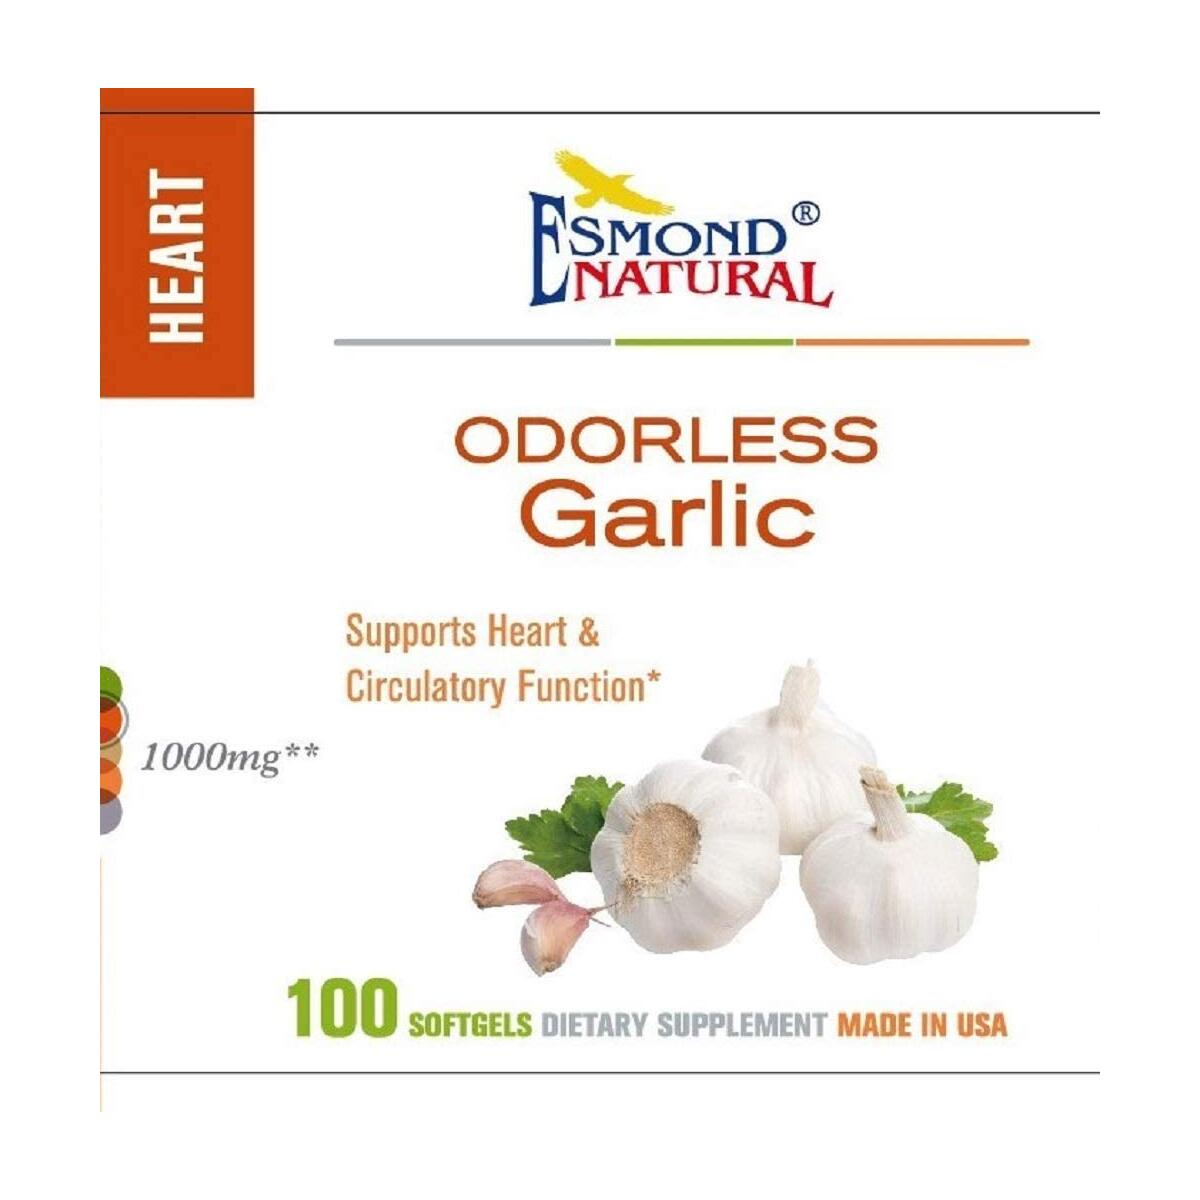 (5 Count, 25% Off) Esmond Natural: Odorless Garlic (Supports Heart & Circulatory Function), GMP, Natural Product Assn Certified, Made in USA-1000mg, 500 Softgels